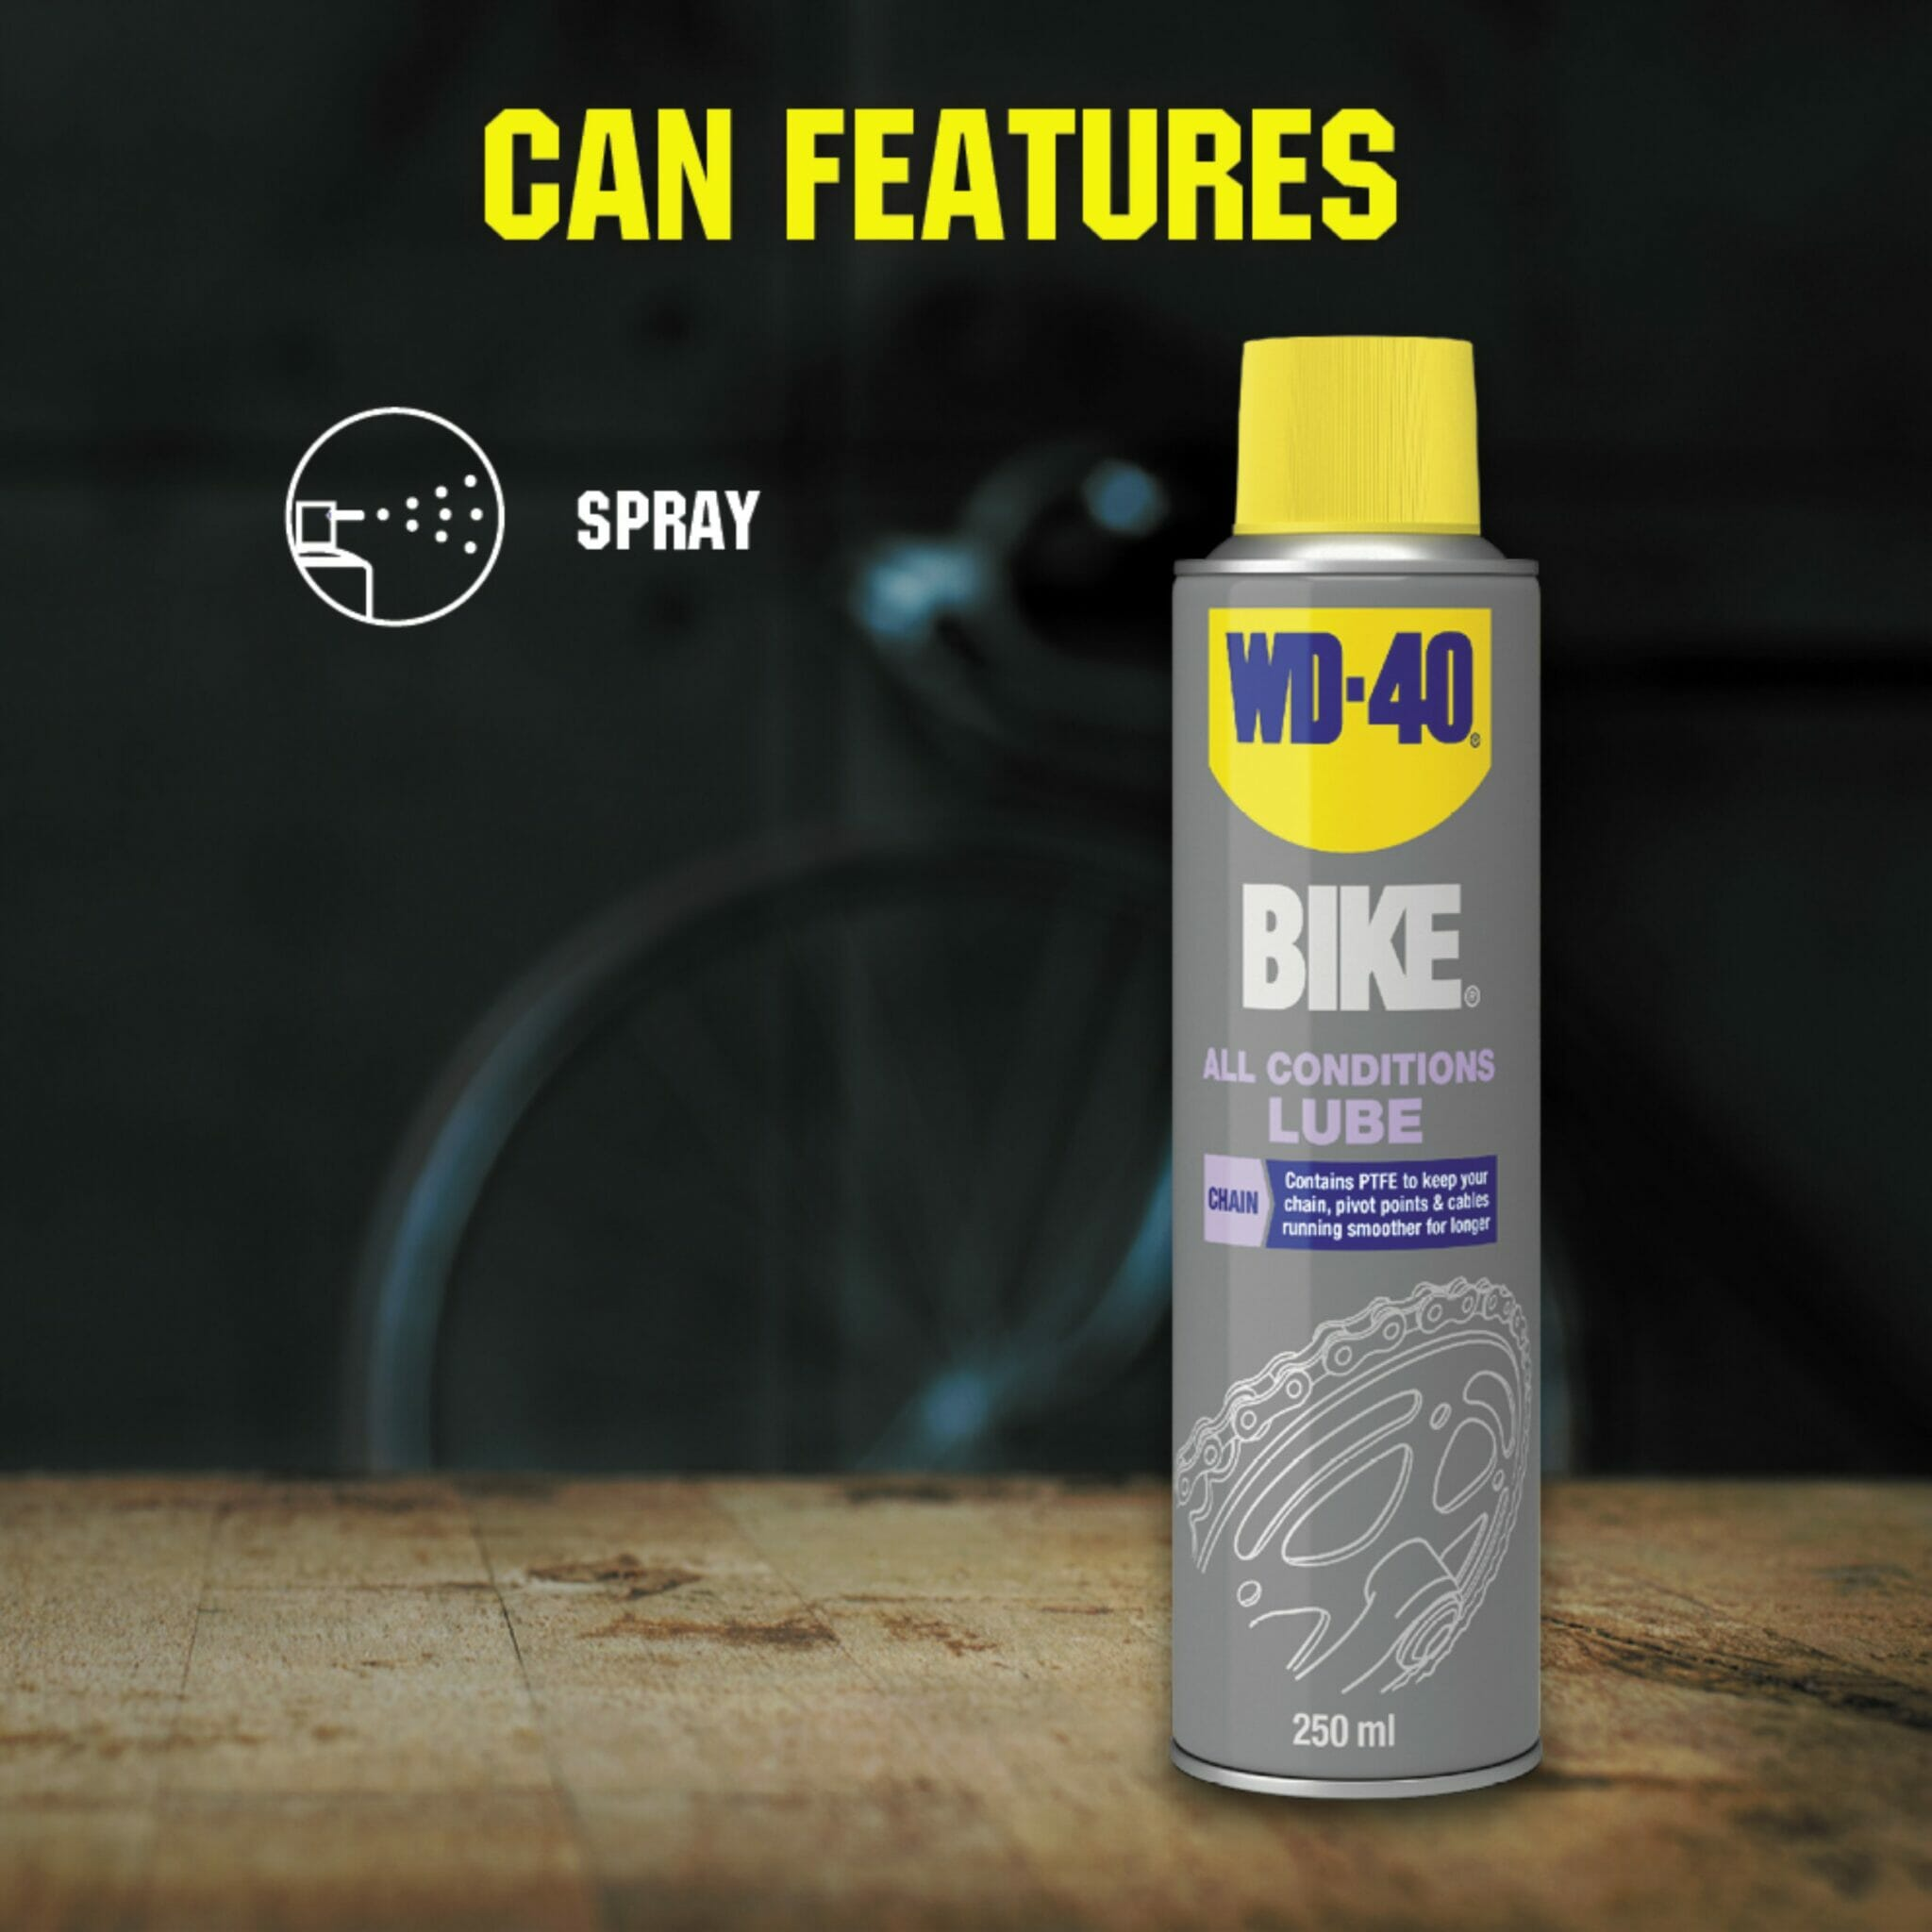 uk wd40 bike all conditions lube 250m can features lifestyle background